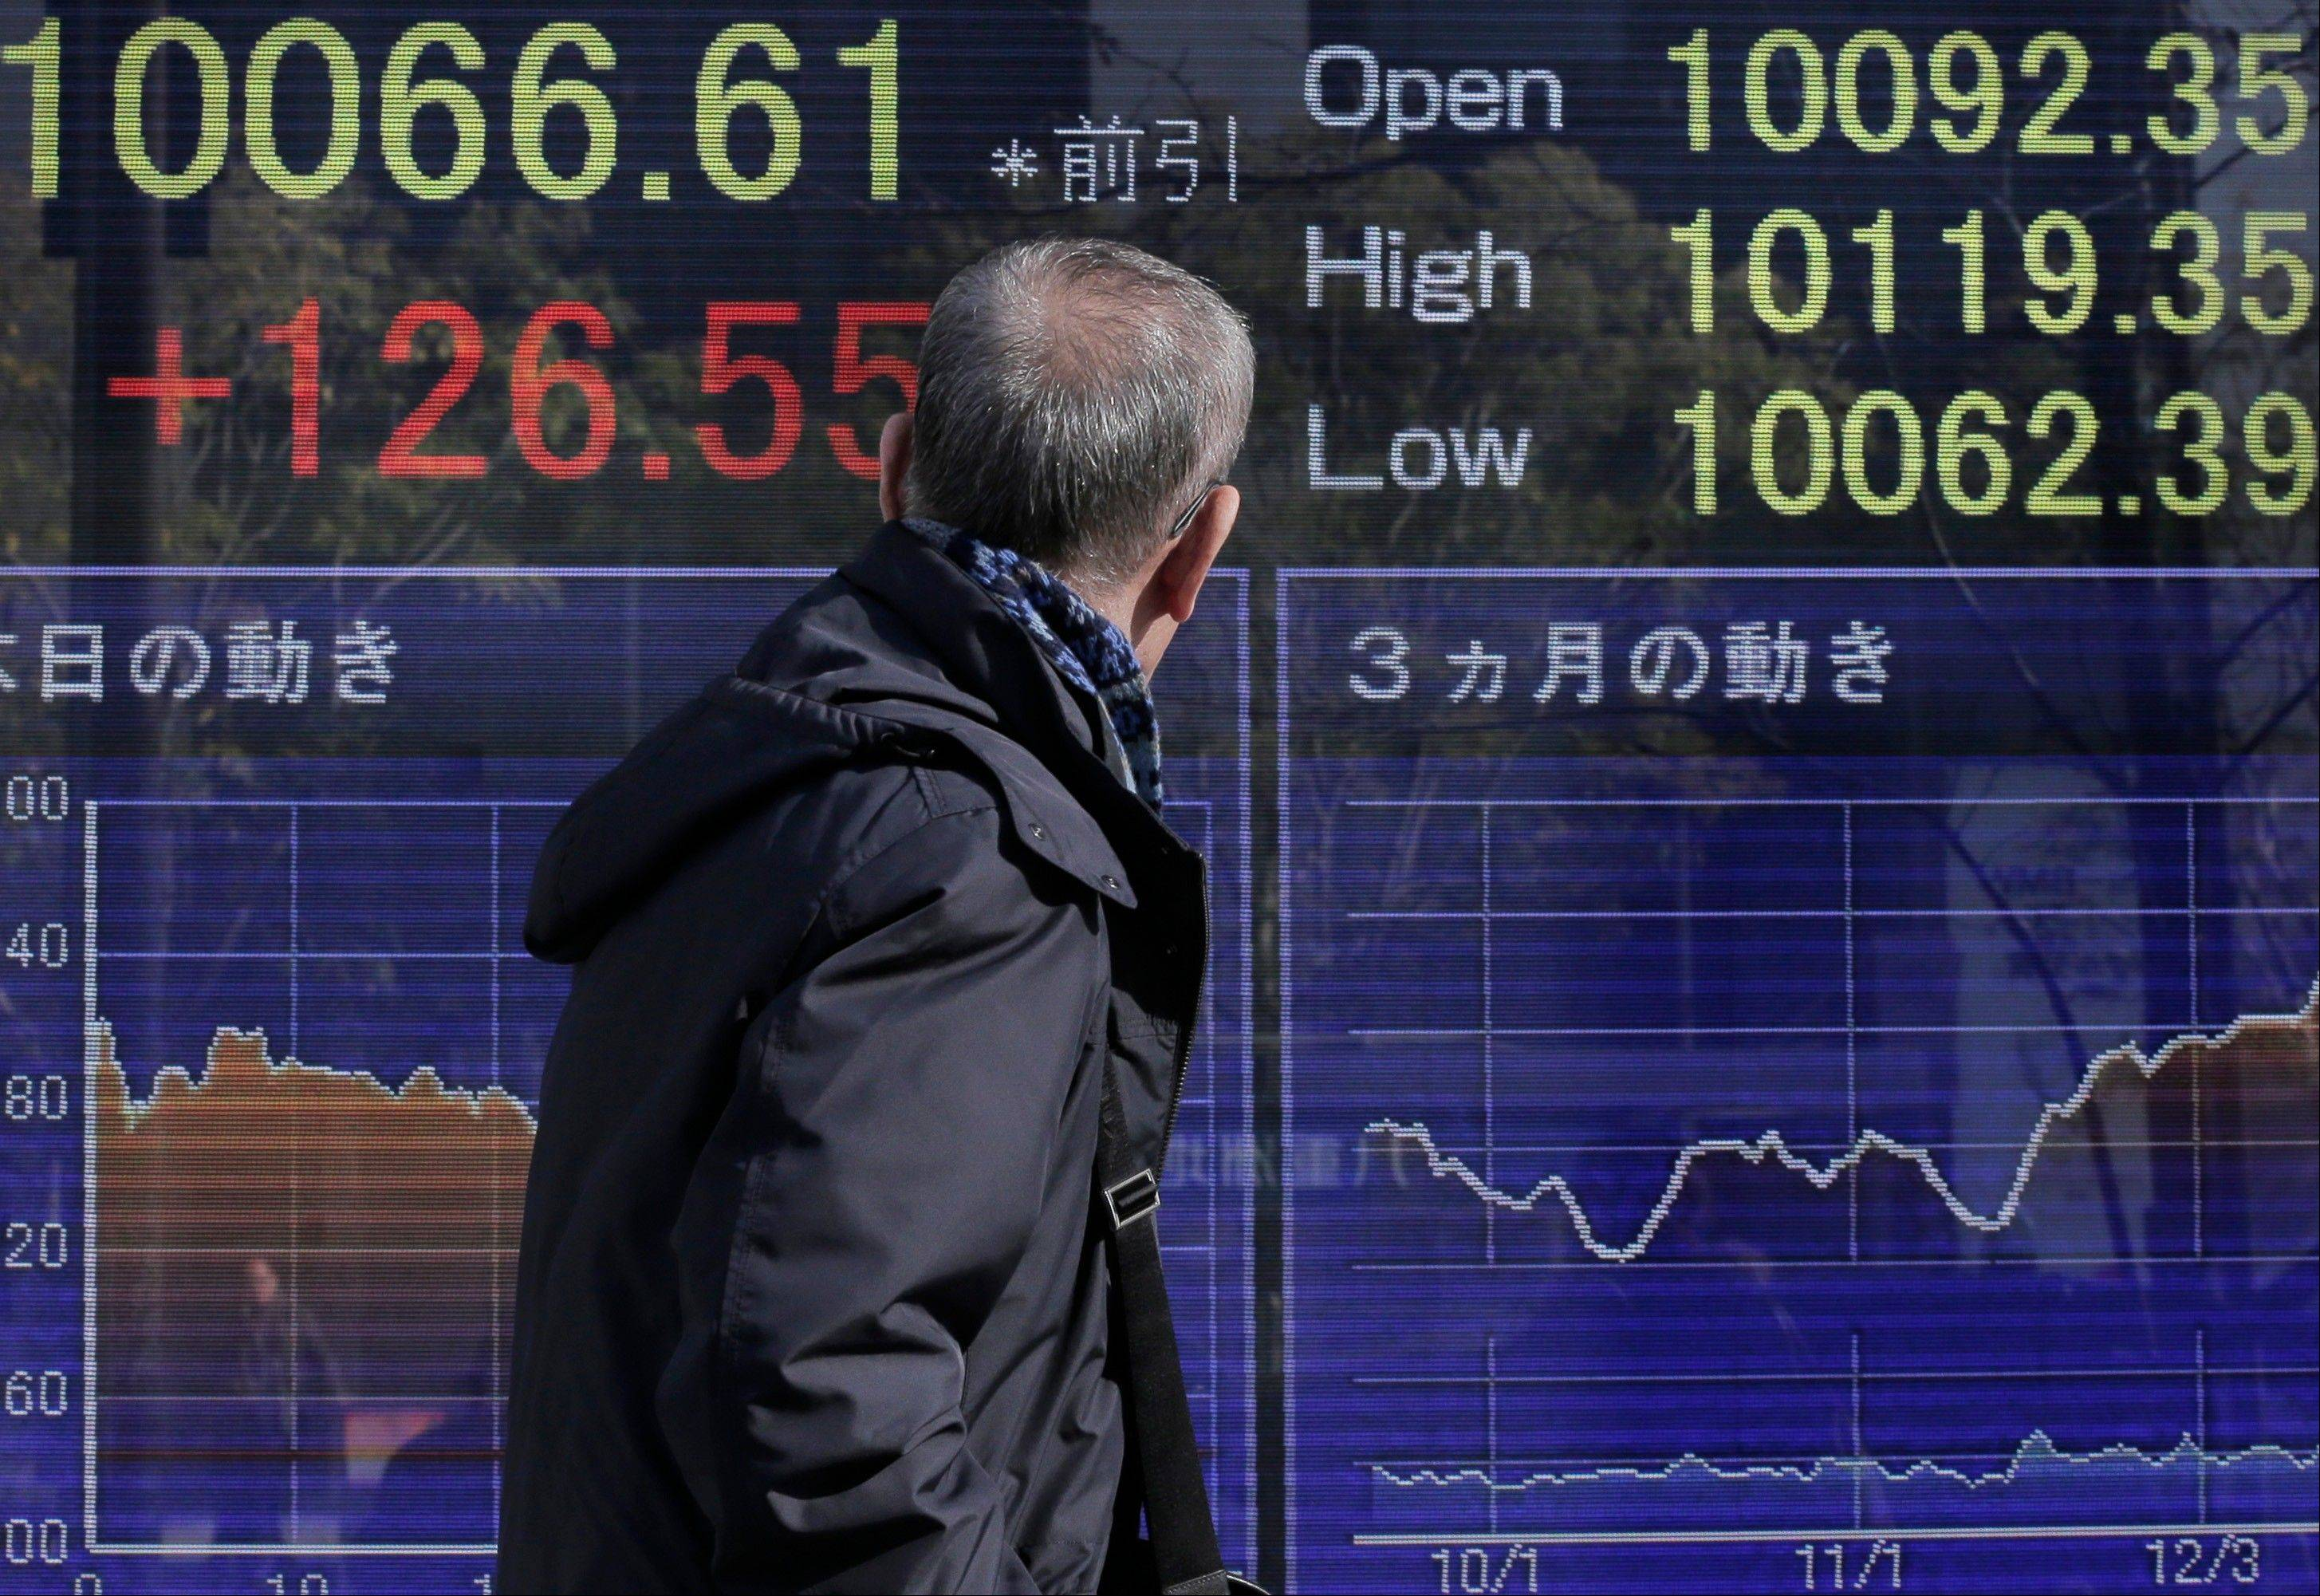 A man walks in front of the electronic stock board of a securities firm showing Japan�s Nikkei 225 index that rose 126.55 points to 10,066.61 in Tokyo Tuesday.